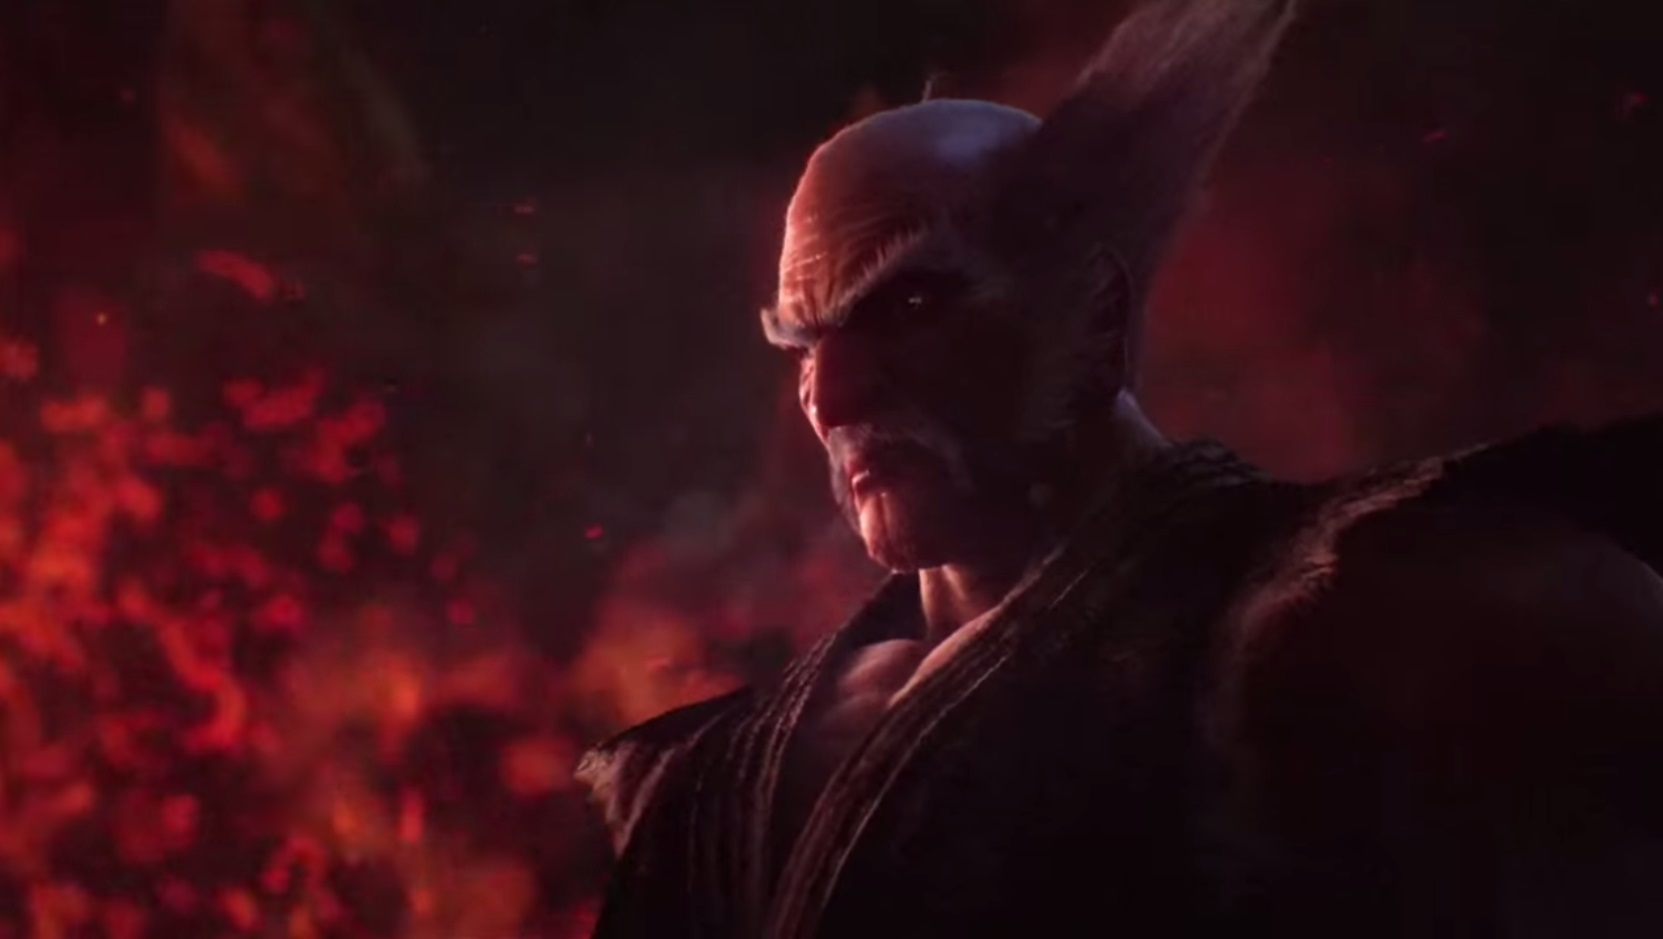 tekken 7 heihachi mishima - photo #17